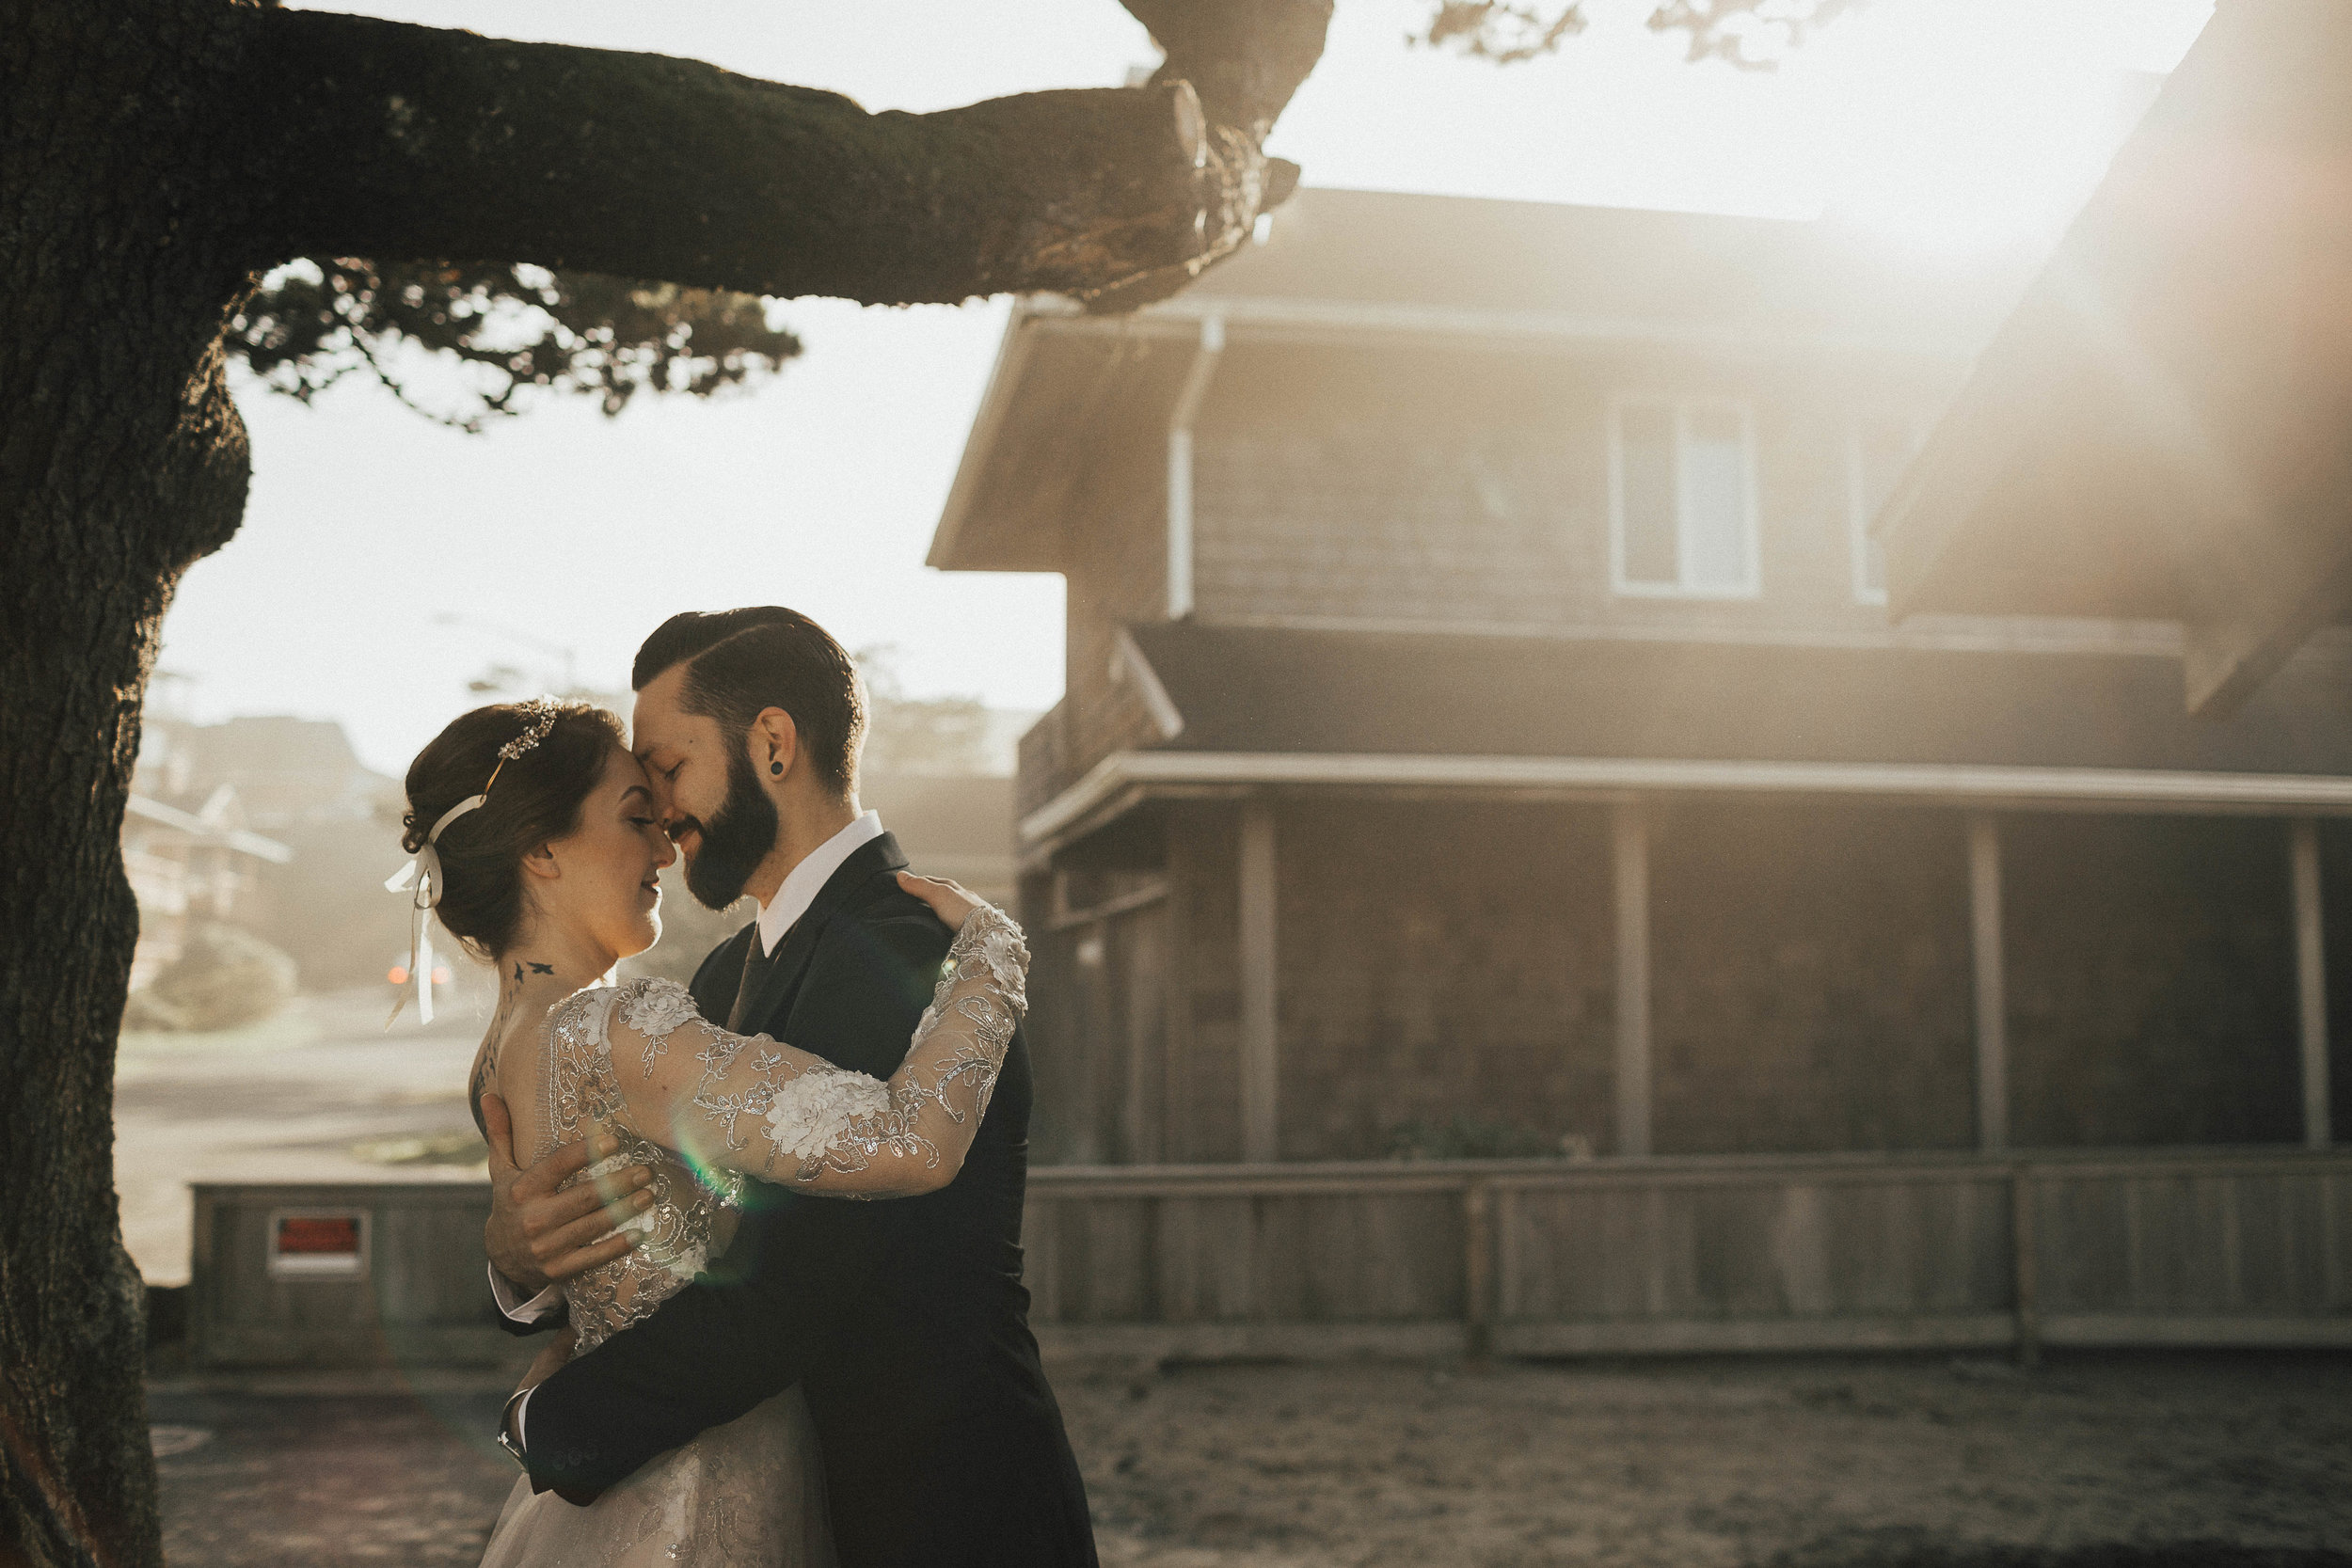 Cannon Beach Elopement - Michelle Larmand Photography - 025